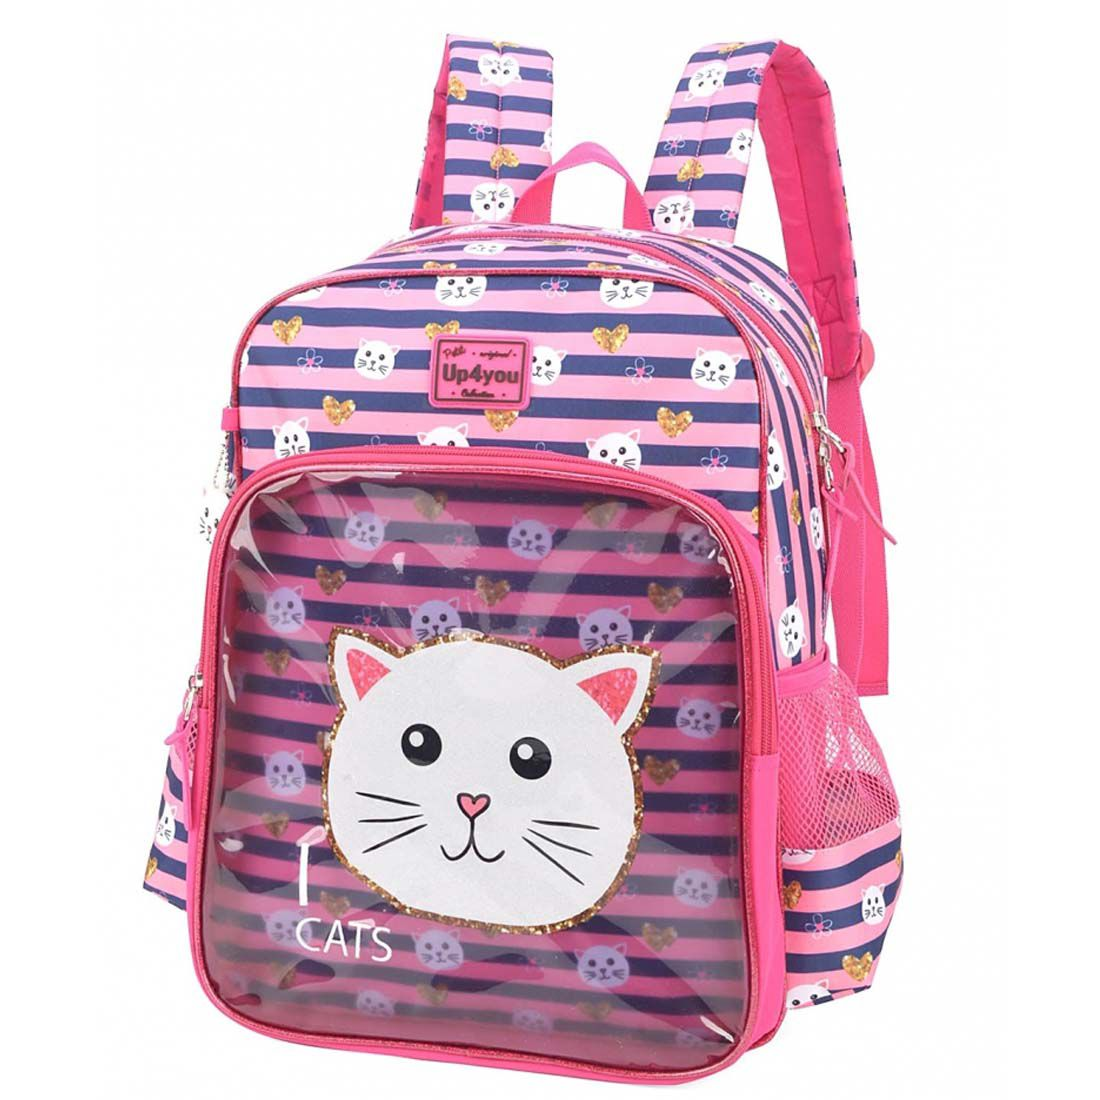 Mochila Infantil Up4you Gato